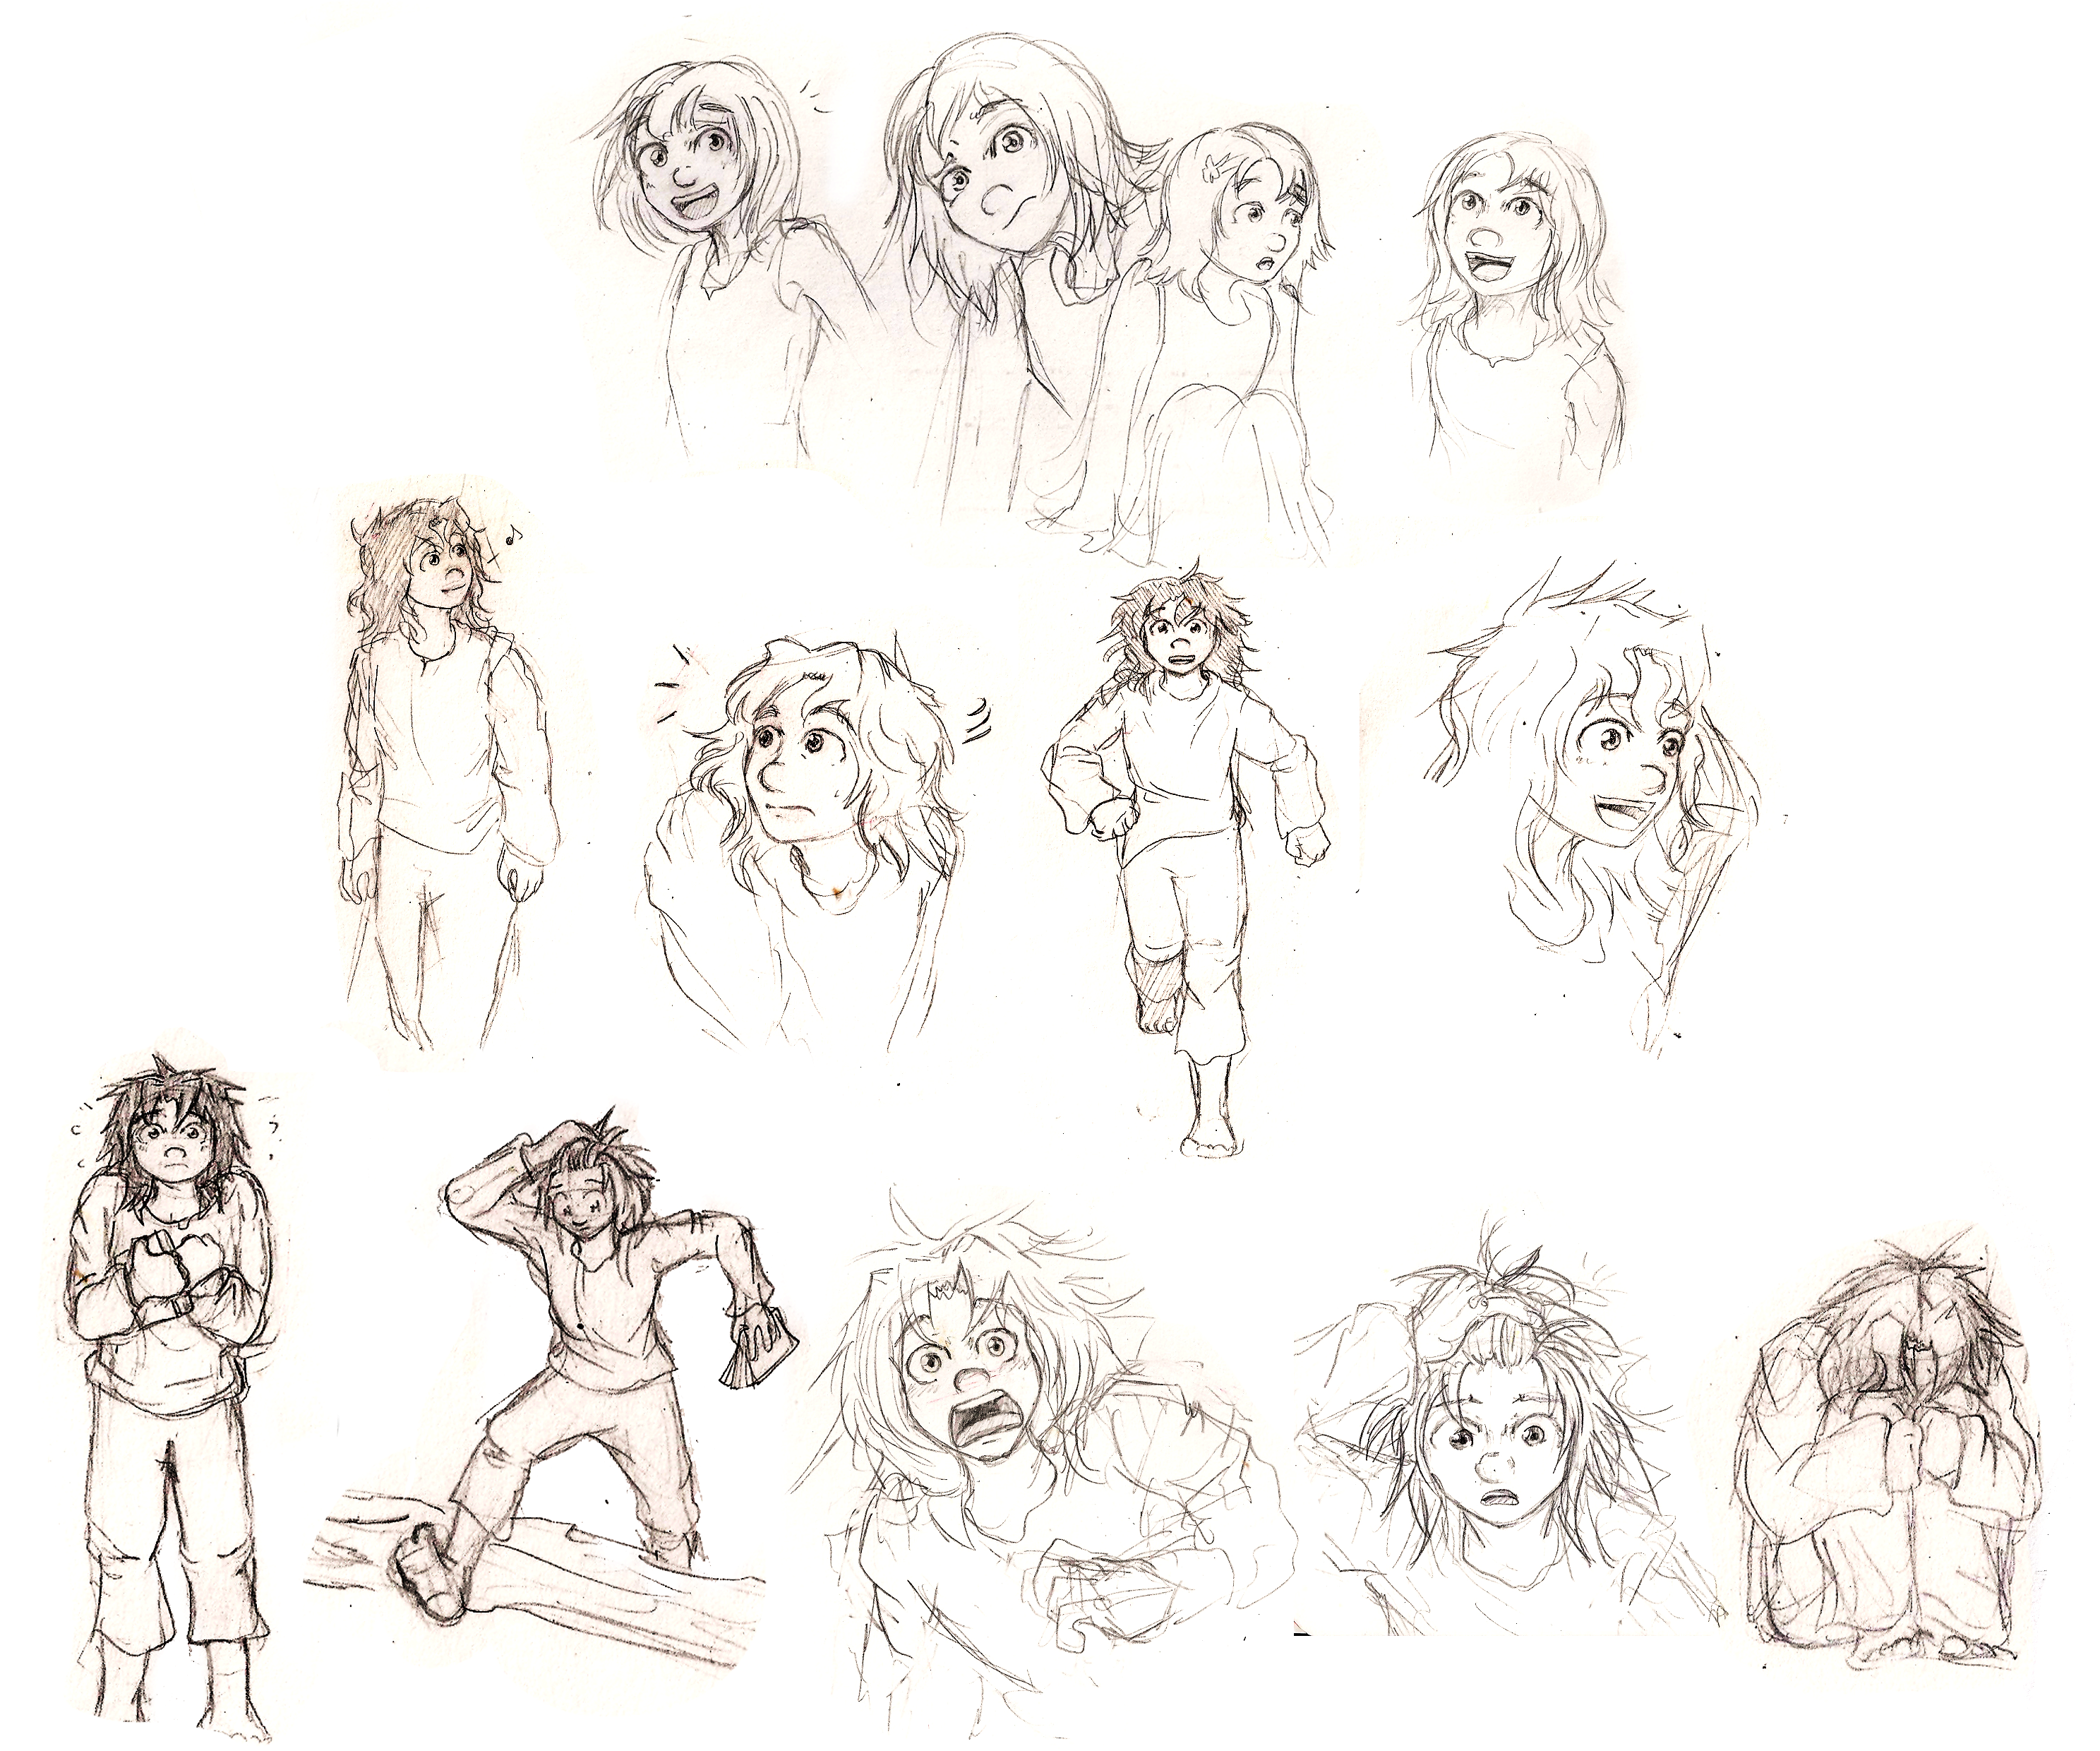 Character concepts (sketches)